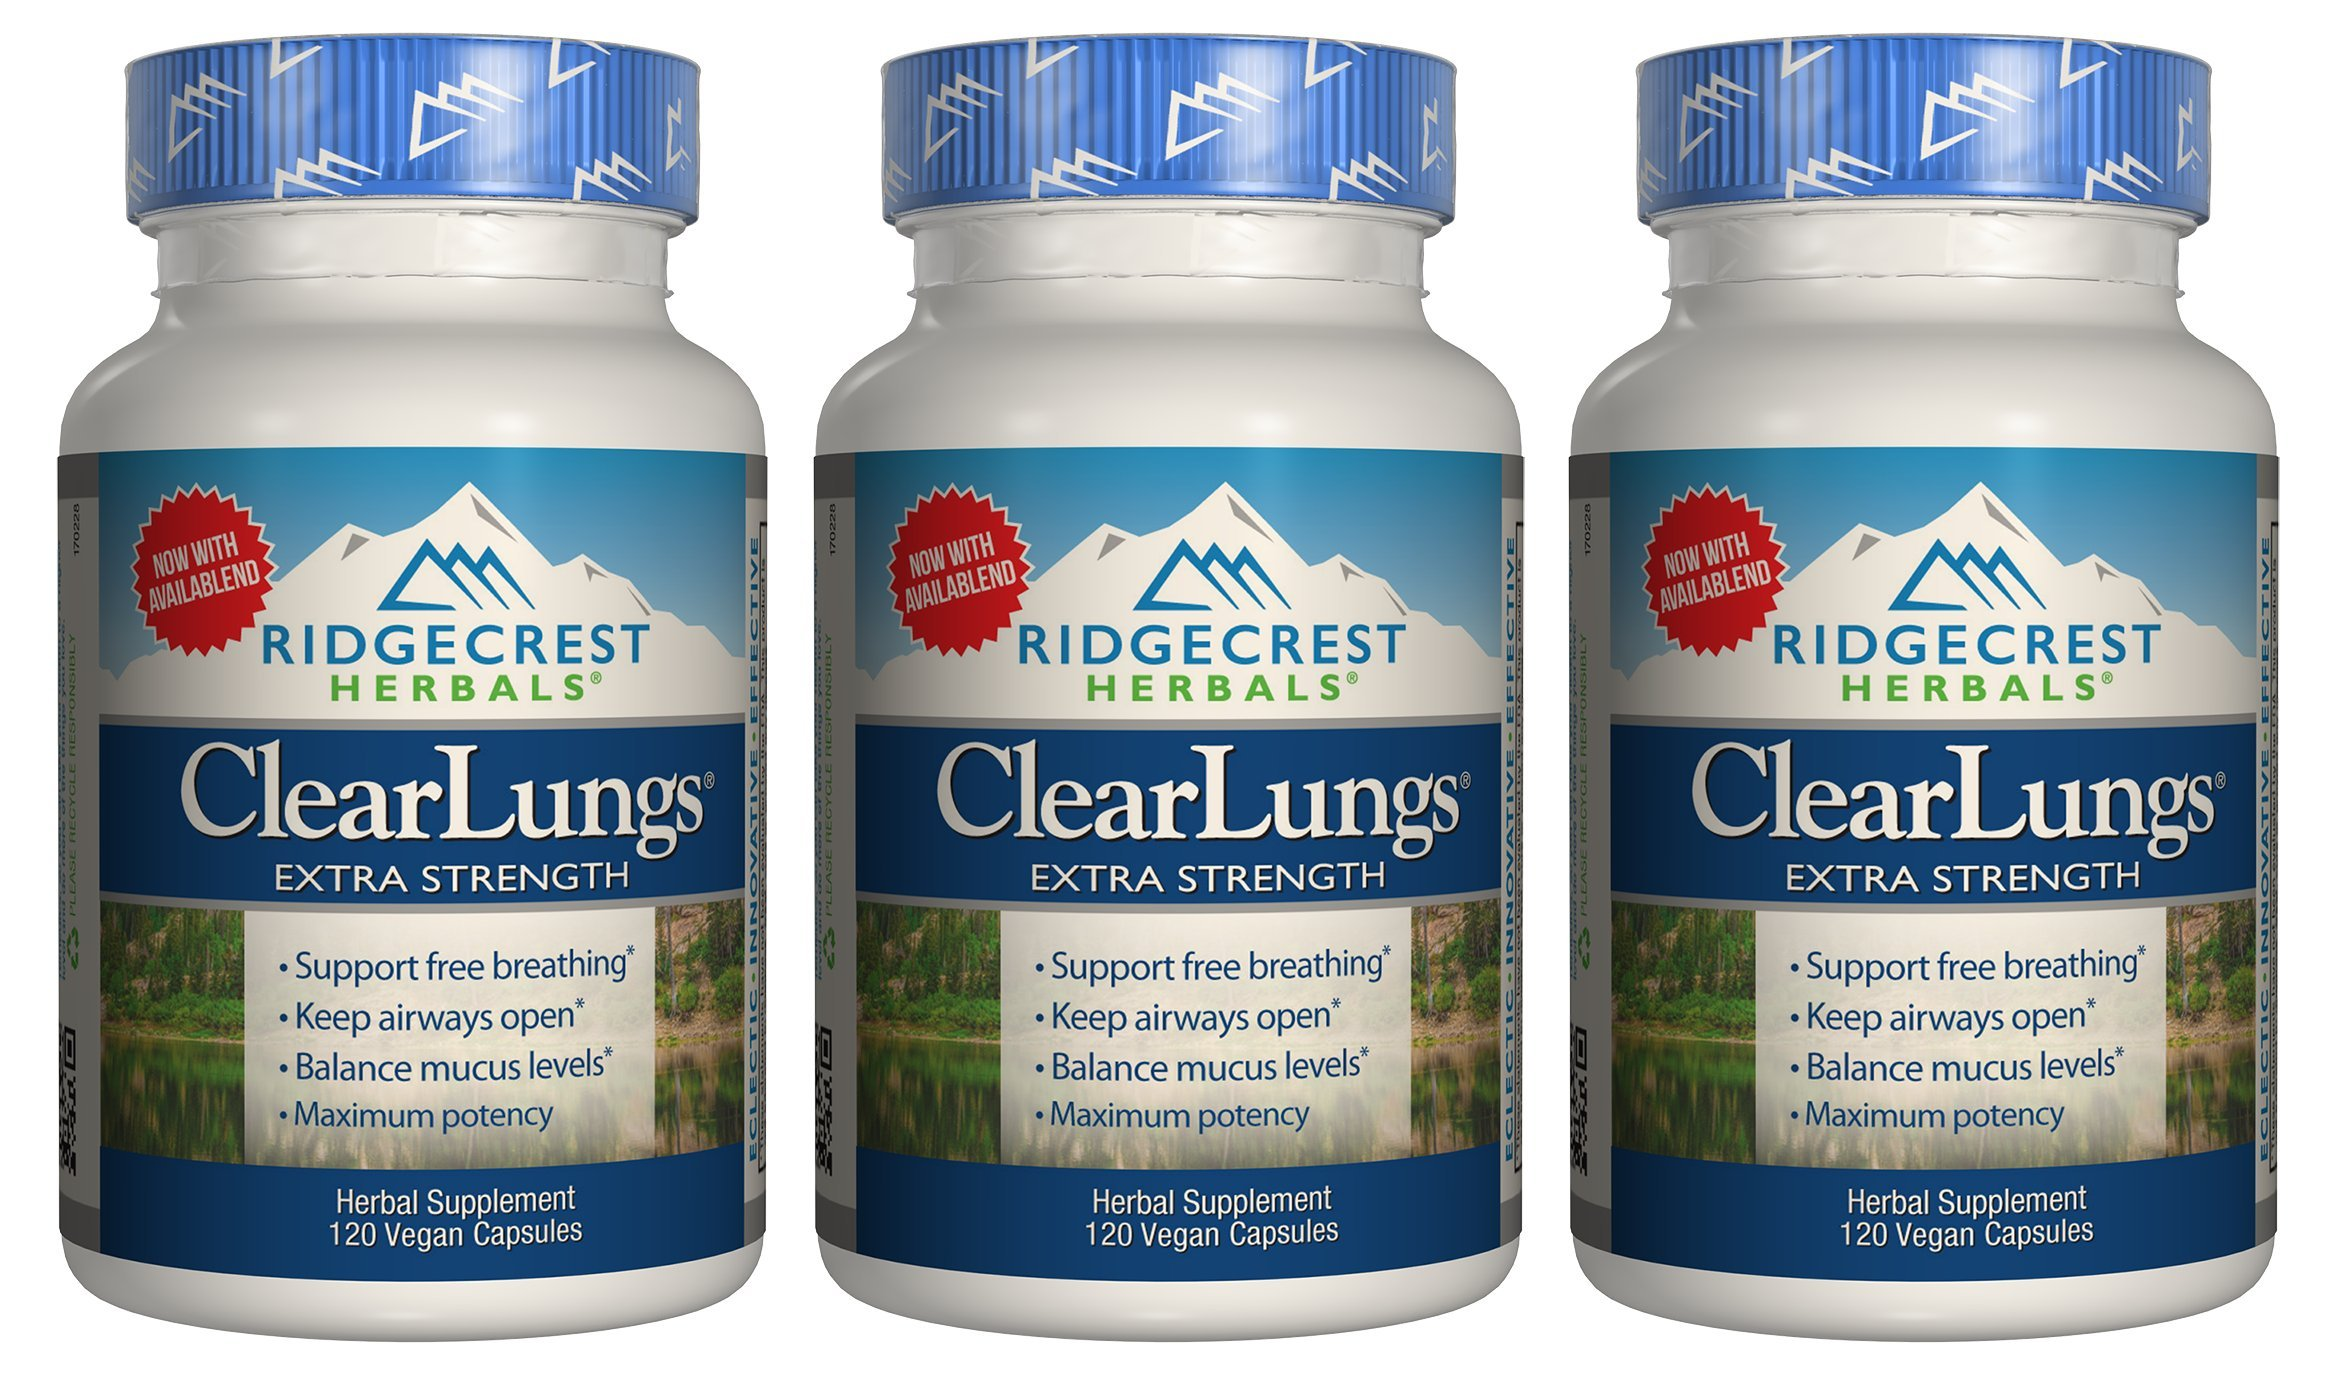 Clear Lungs Extra Strength - 120 Capsules - 3 Pack